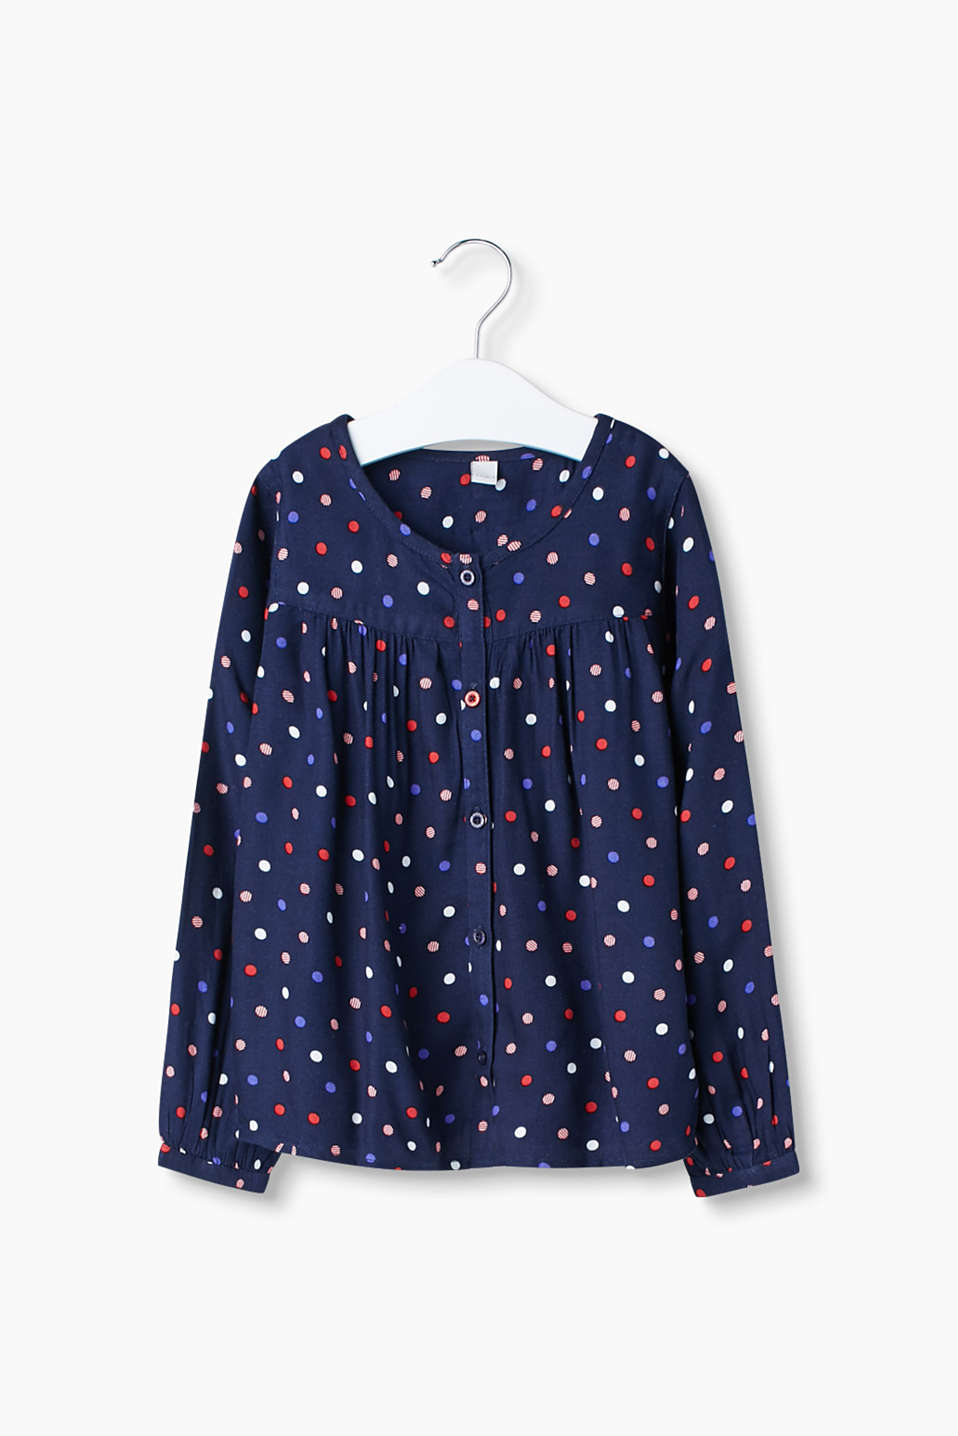 Flowing soft blouse in an A-line design with a charming polka dot pattern.